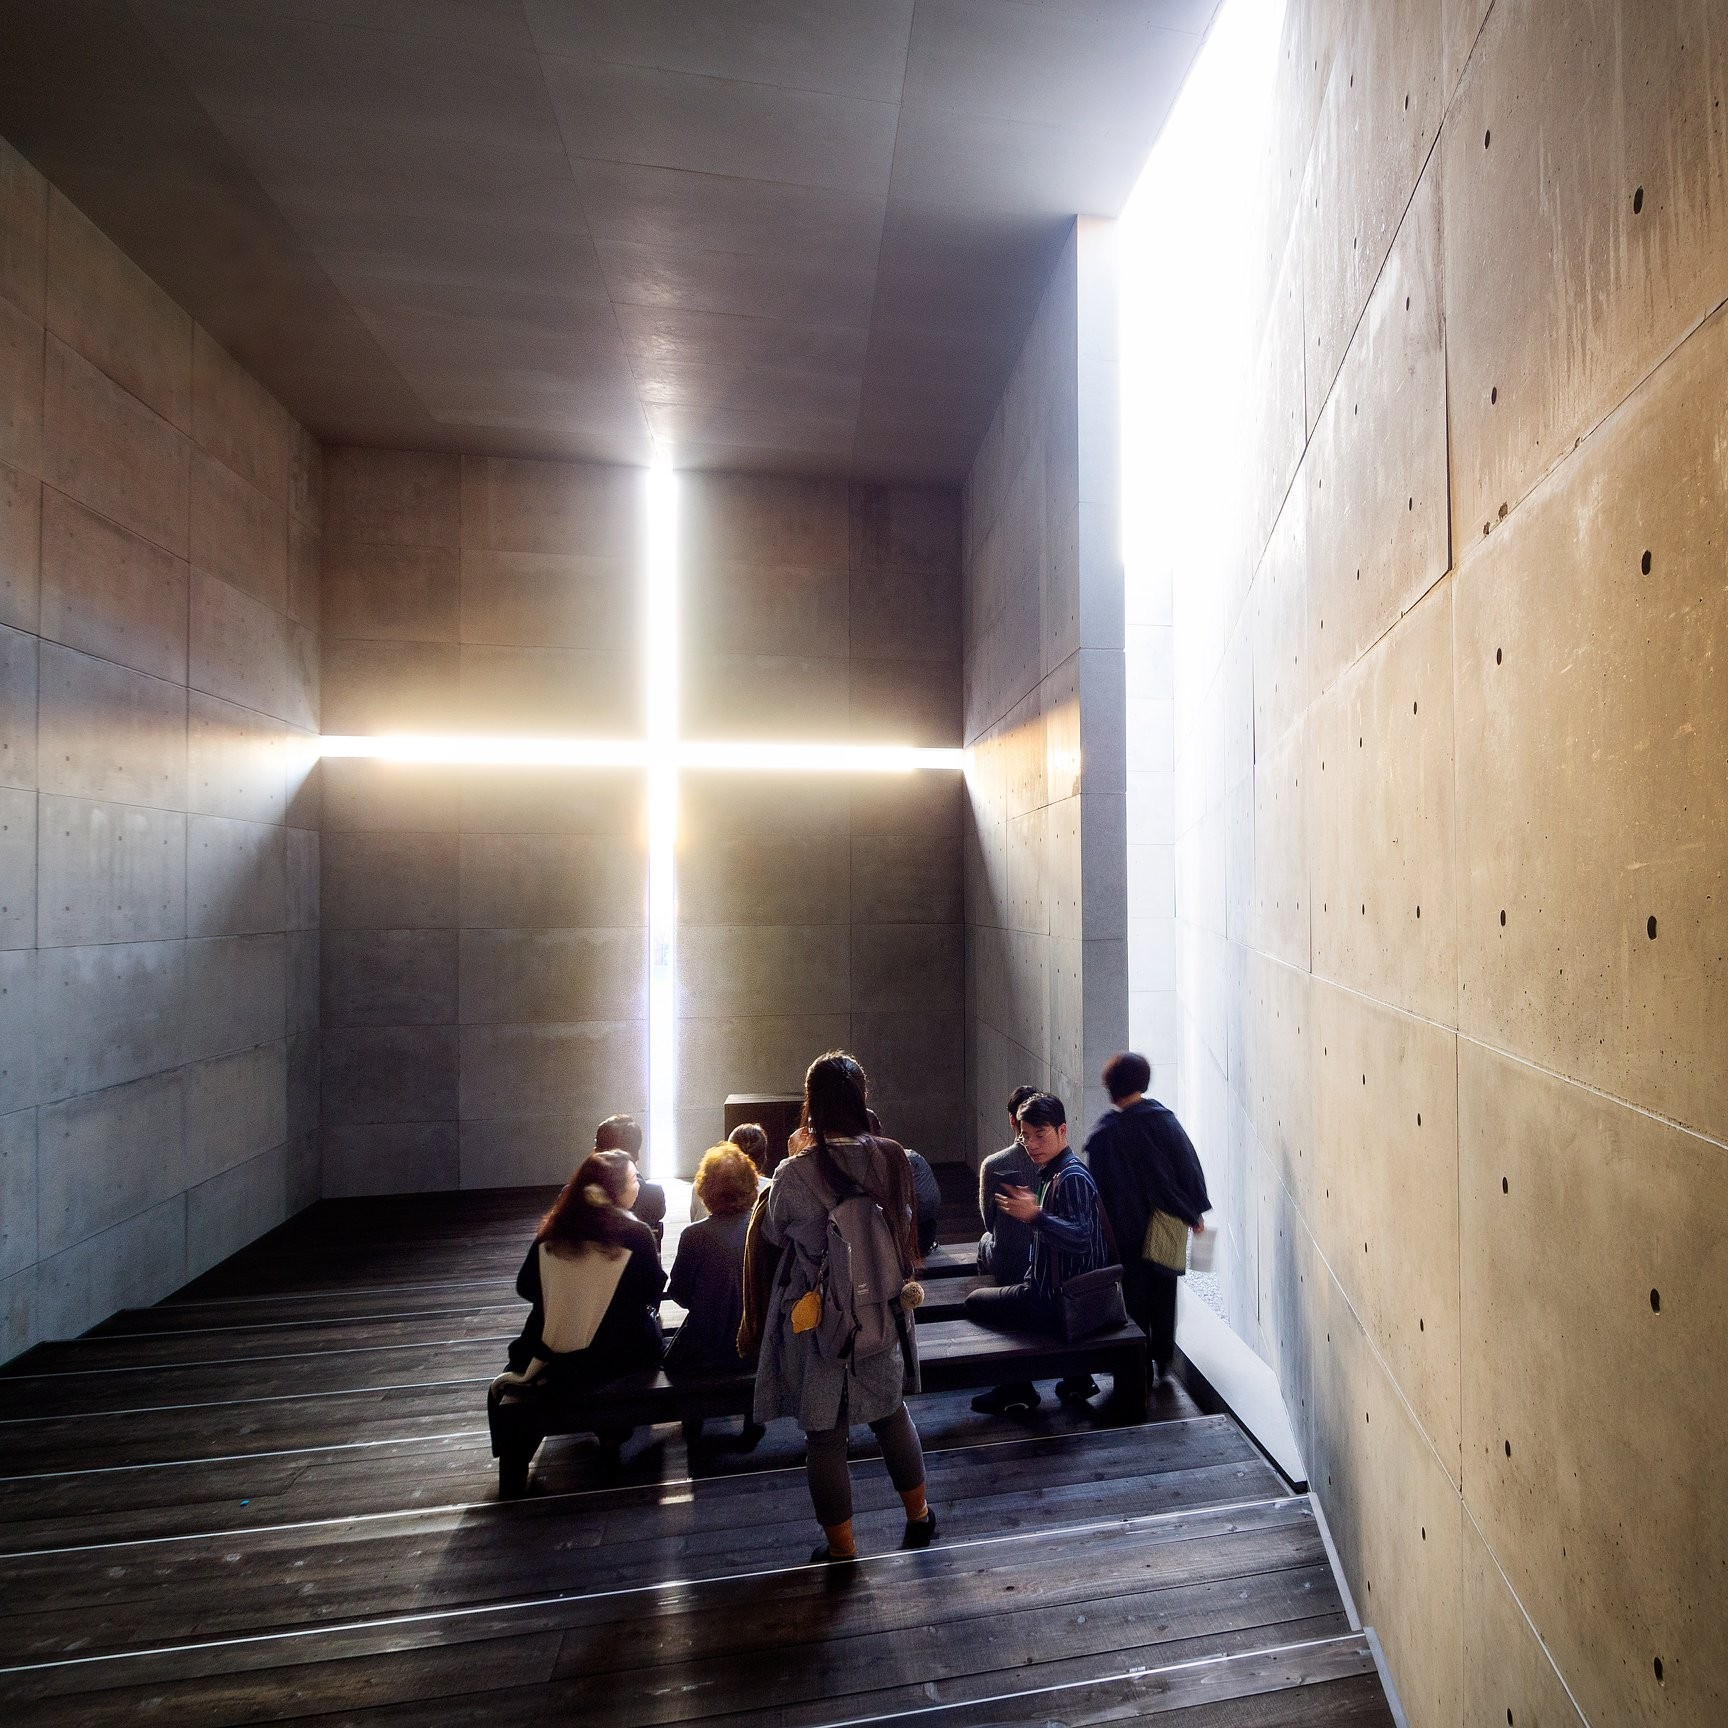 Full-scale model of Church of the Light, National Art Center, Tokyo Architect Tadao Ando